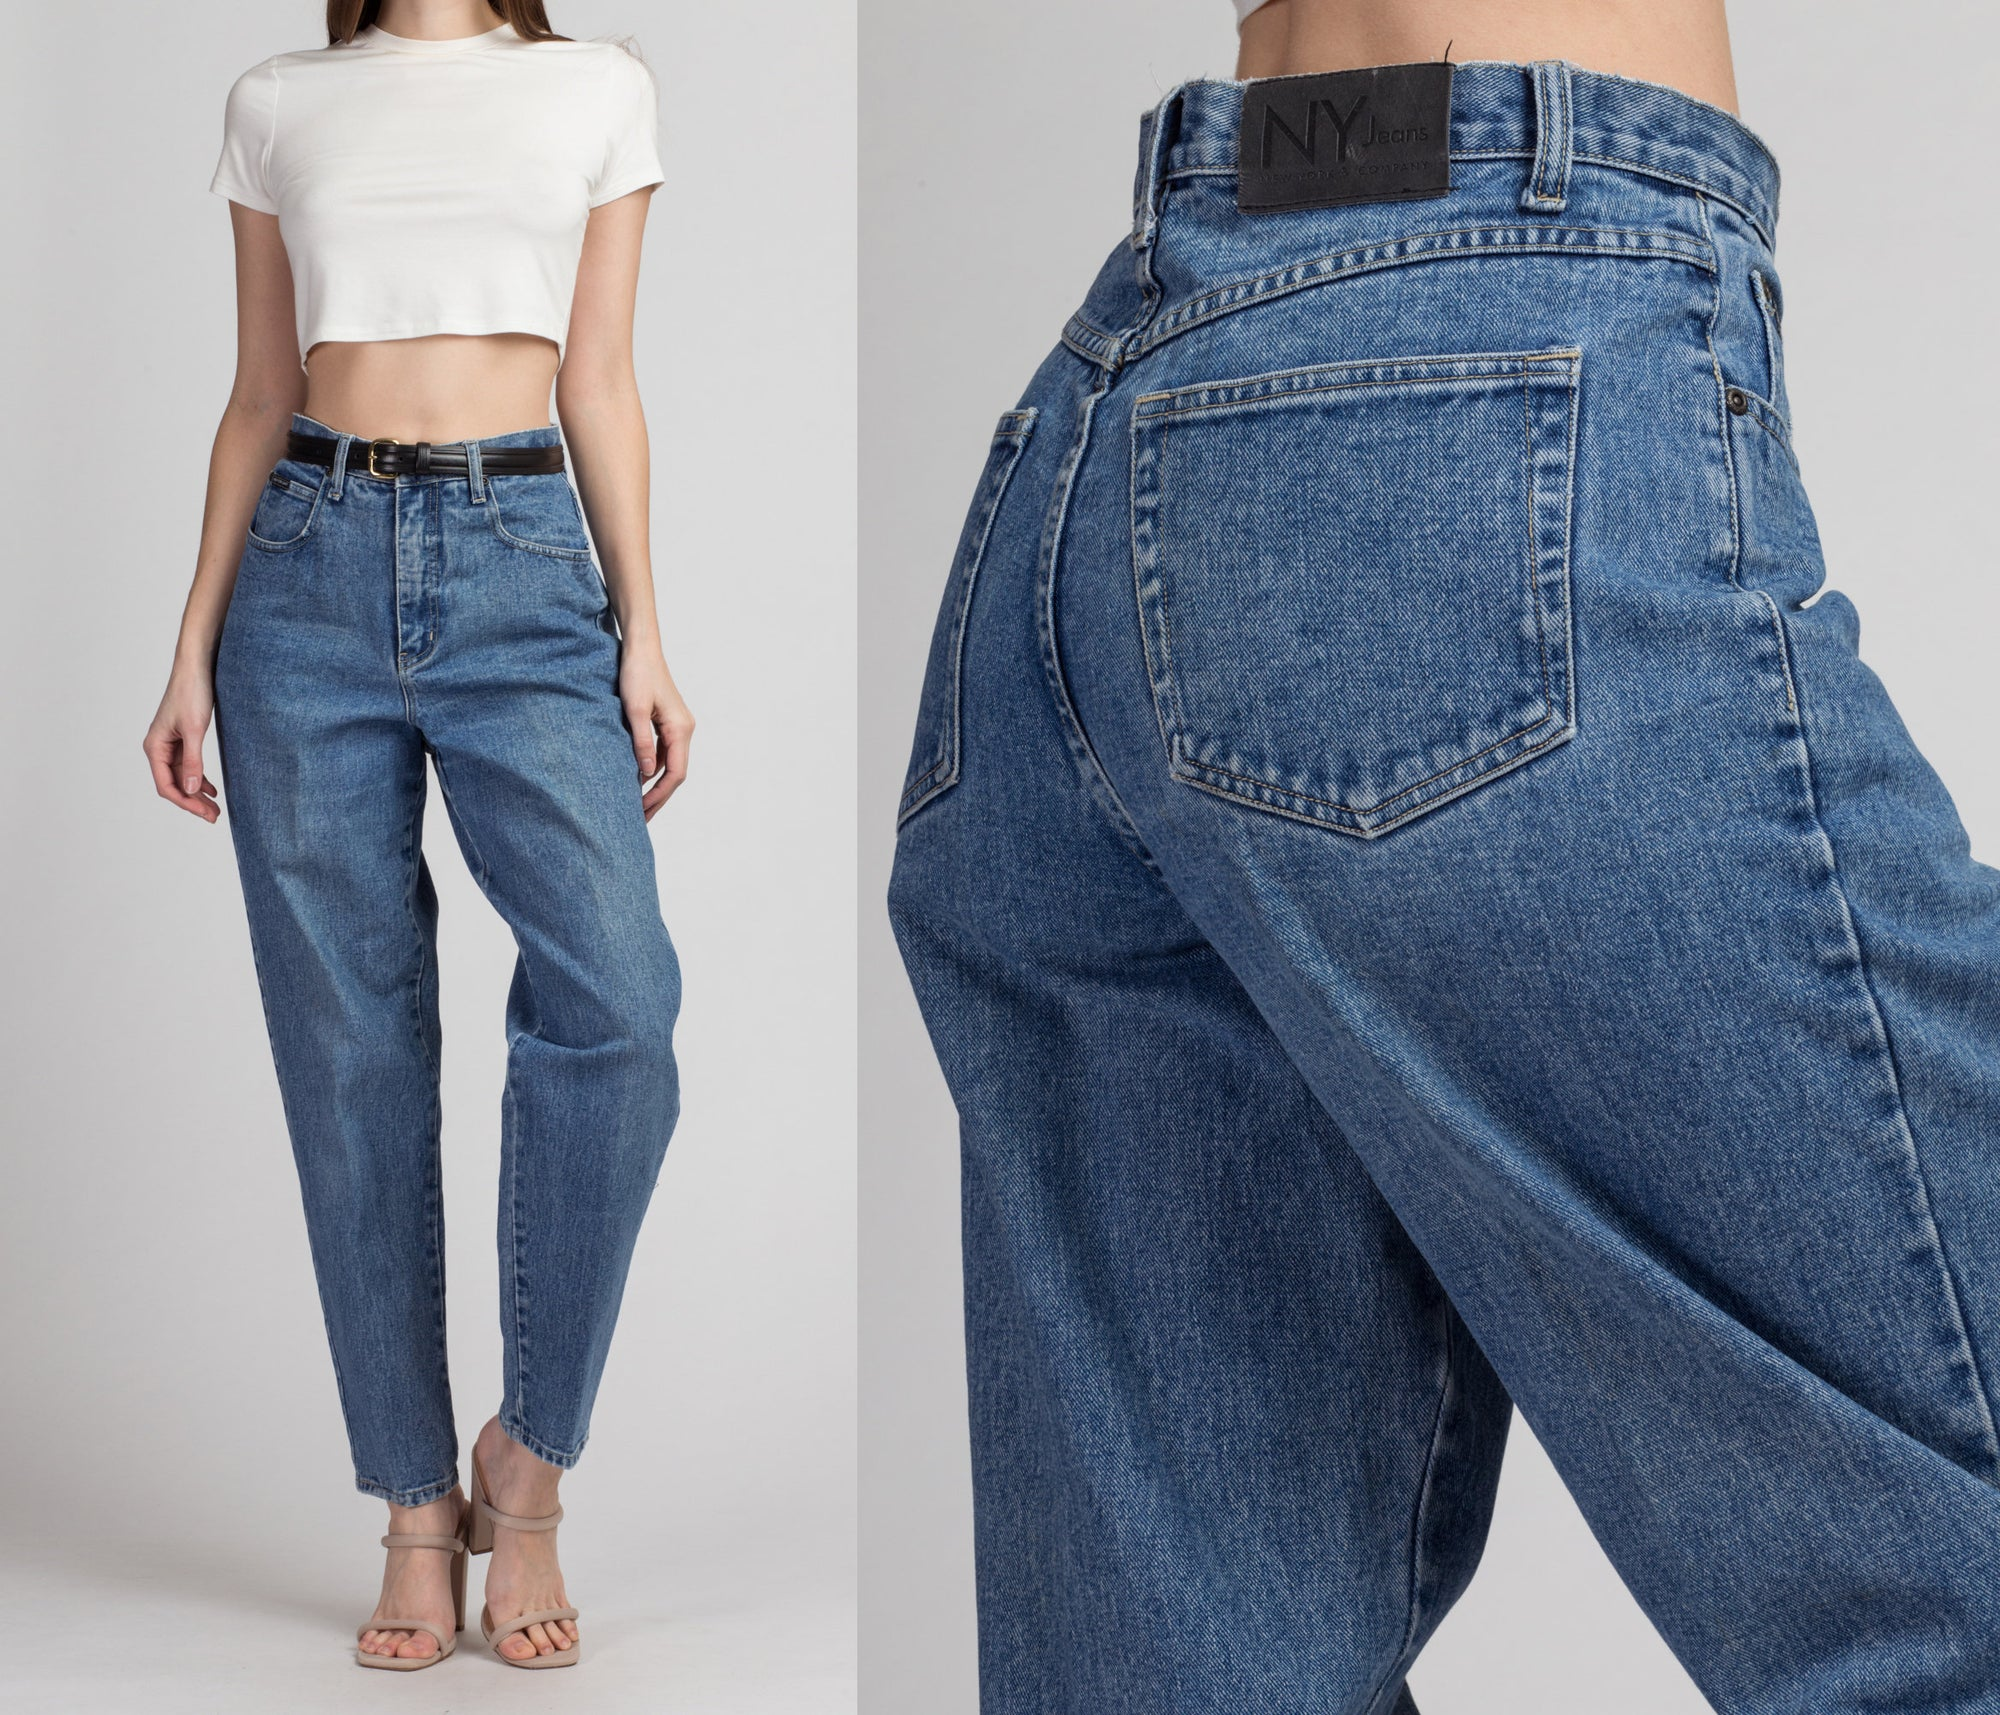 90s High Waist NY Jeans - Medium, 30"